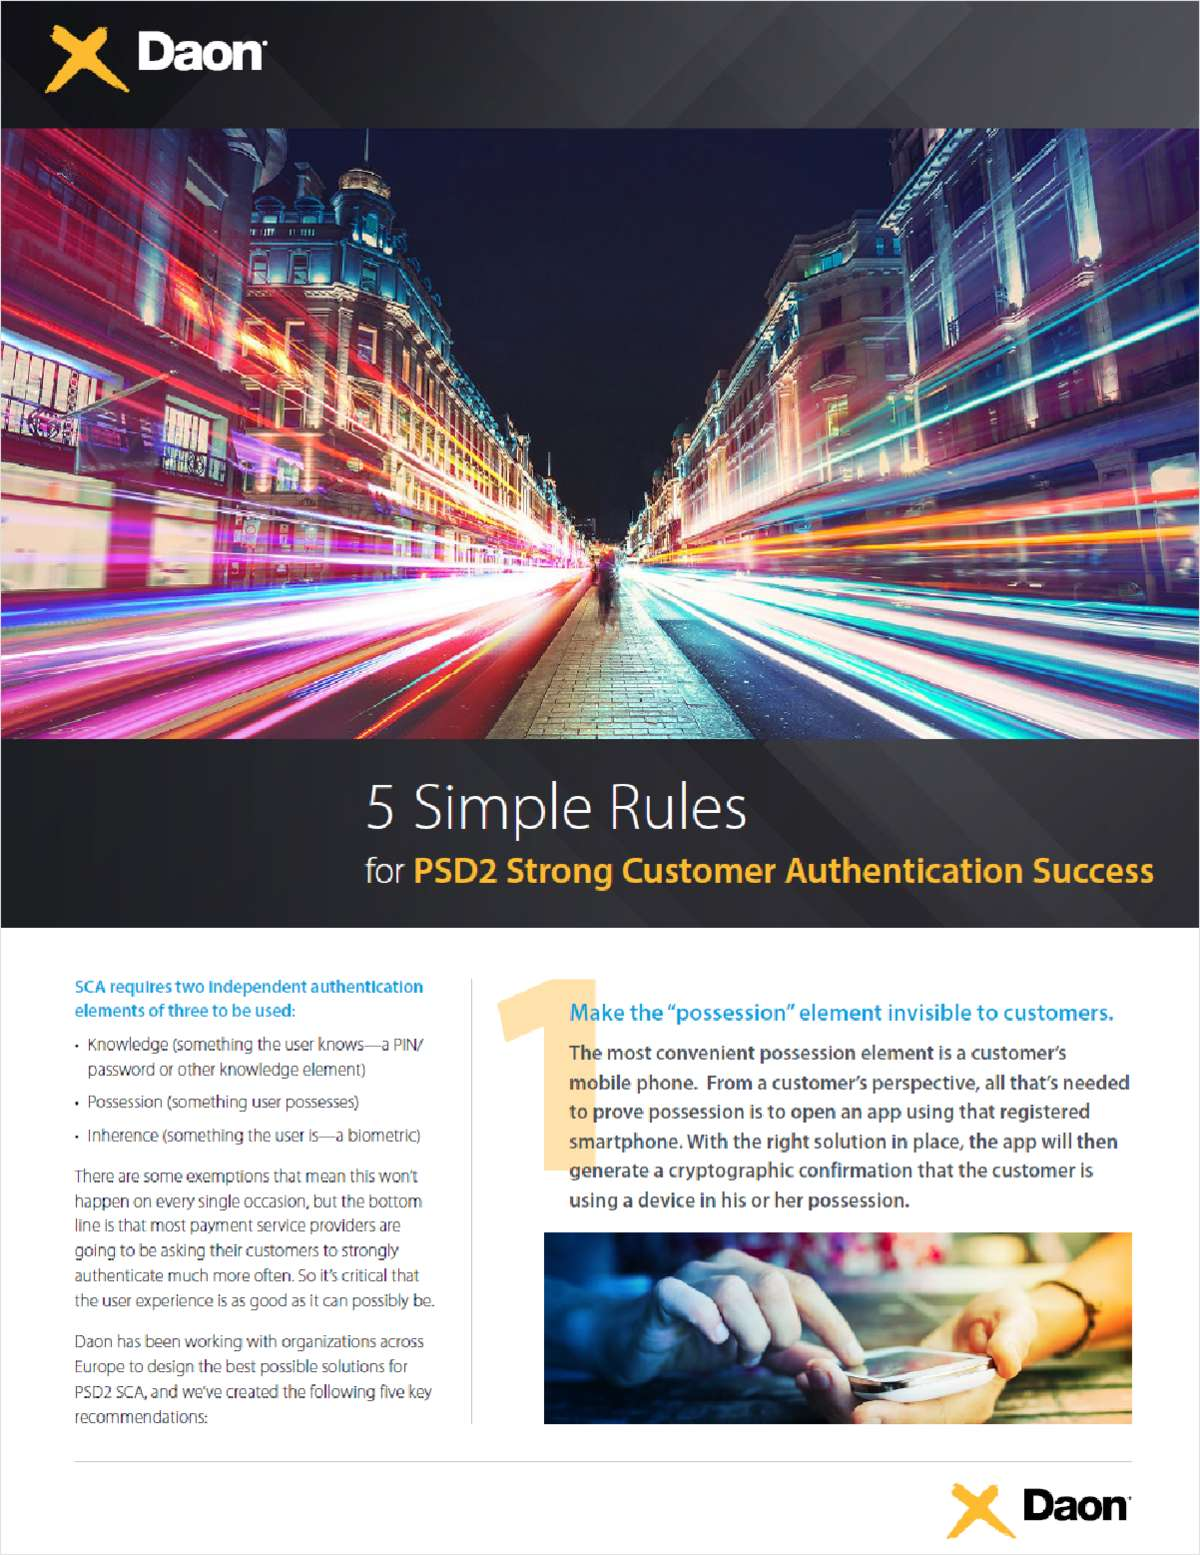 5 Simple Rules for PSD2 Strong Customer Authentication Success